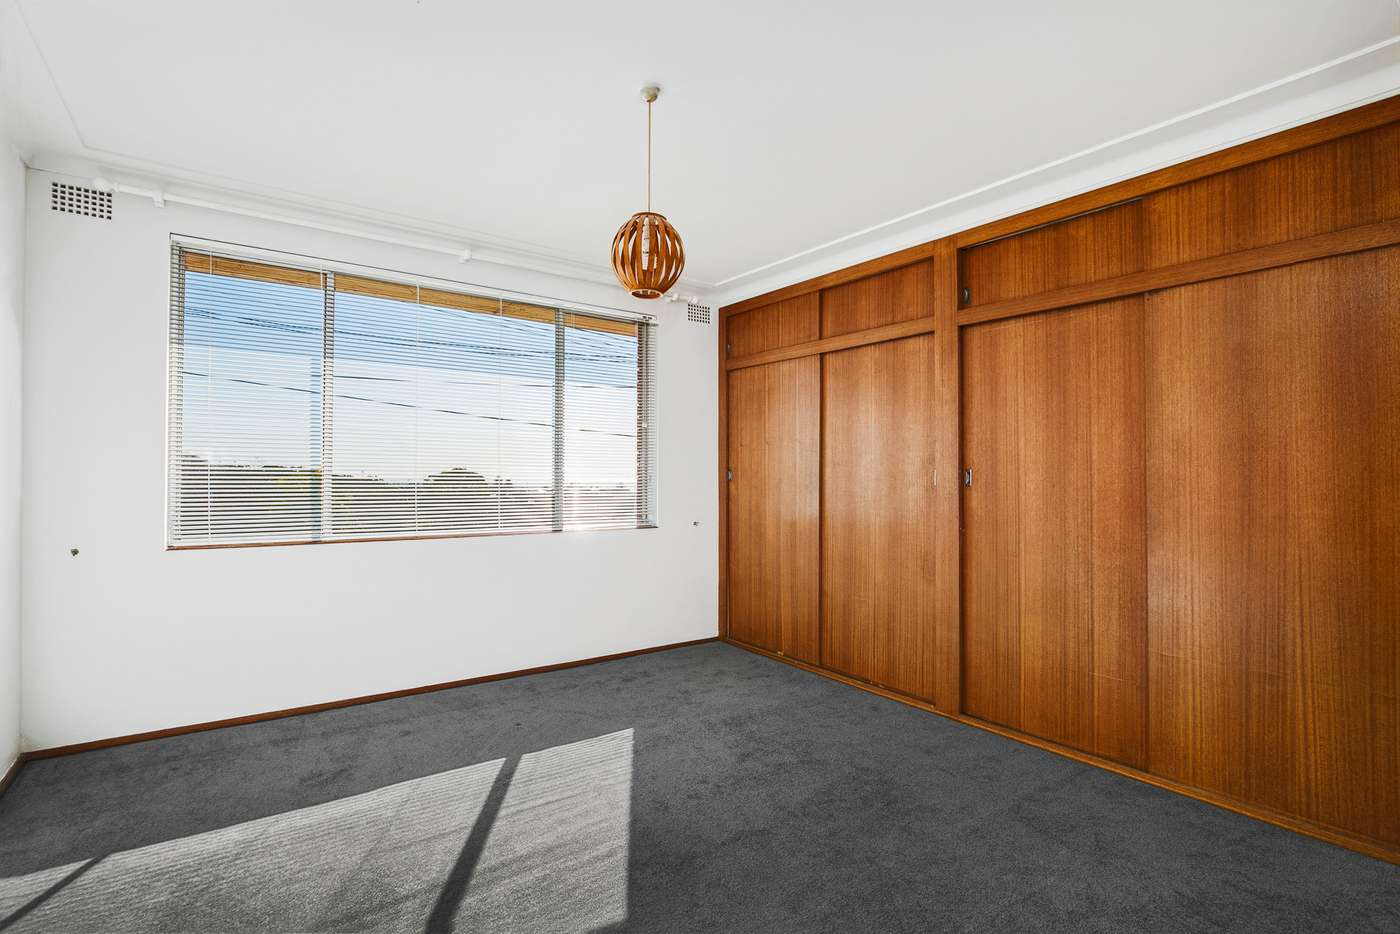 Sixth view of Homely house listing, 63 Beacon Hill Road, Beacon Hill NSW 2100